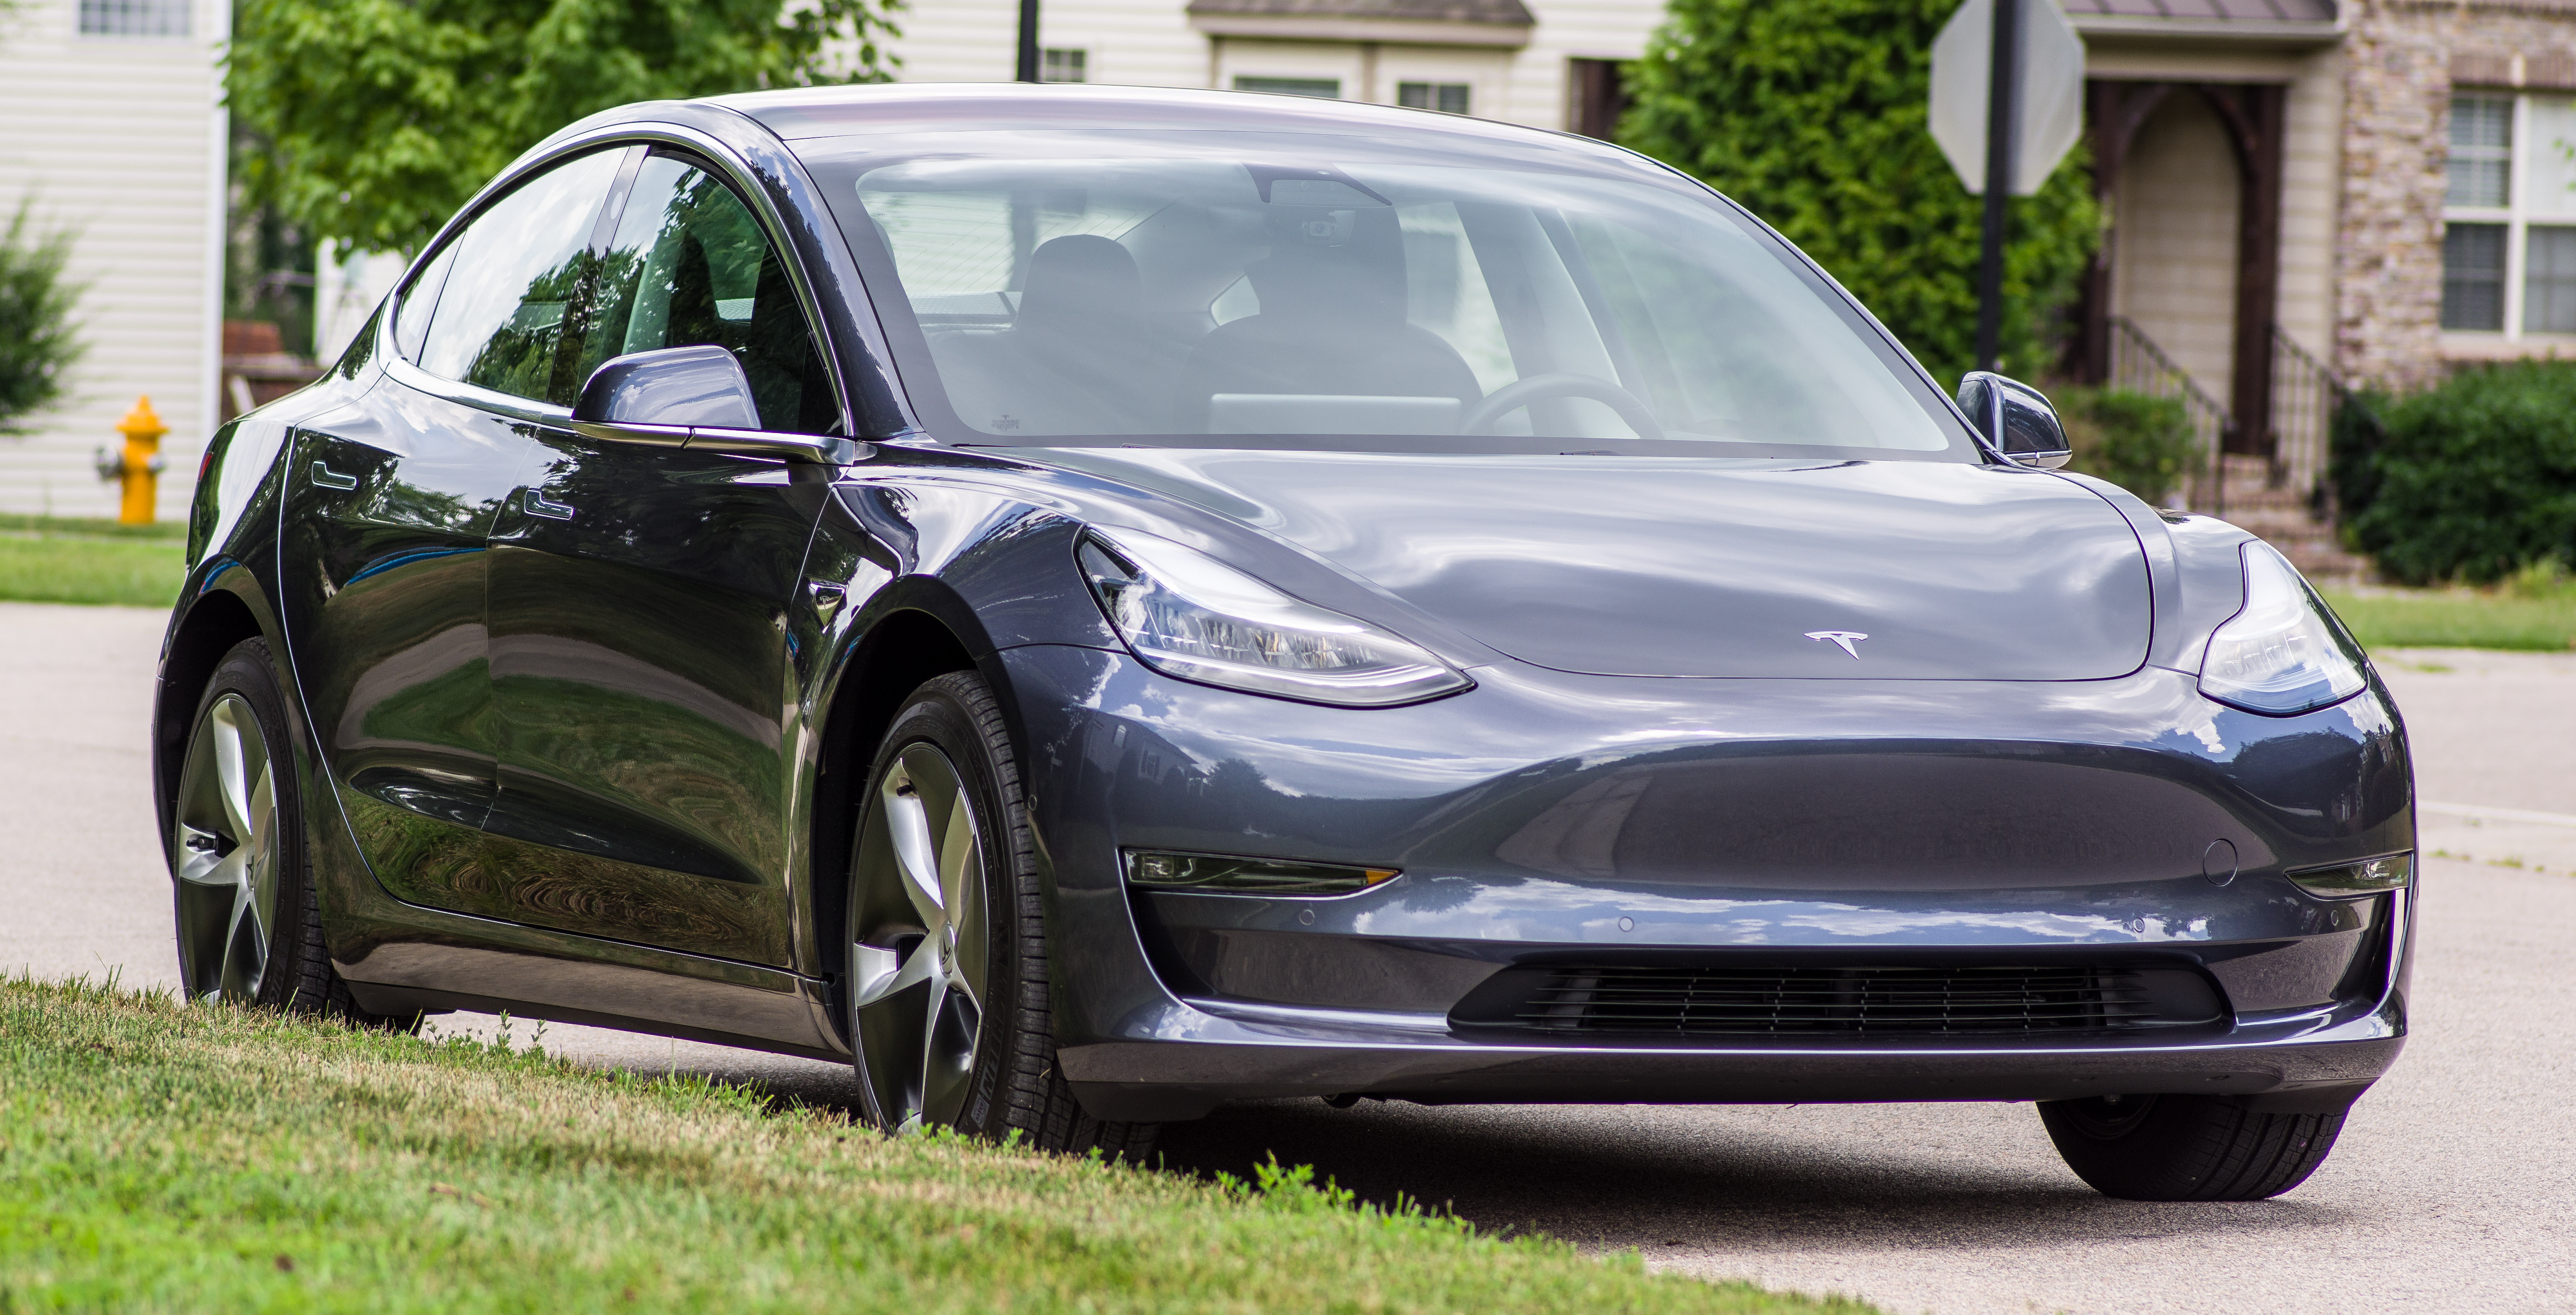 Munro says Tesla Model 3 is profitable | Page 3 | Inside EVS Forum